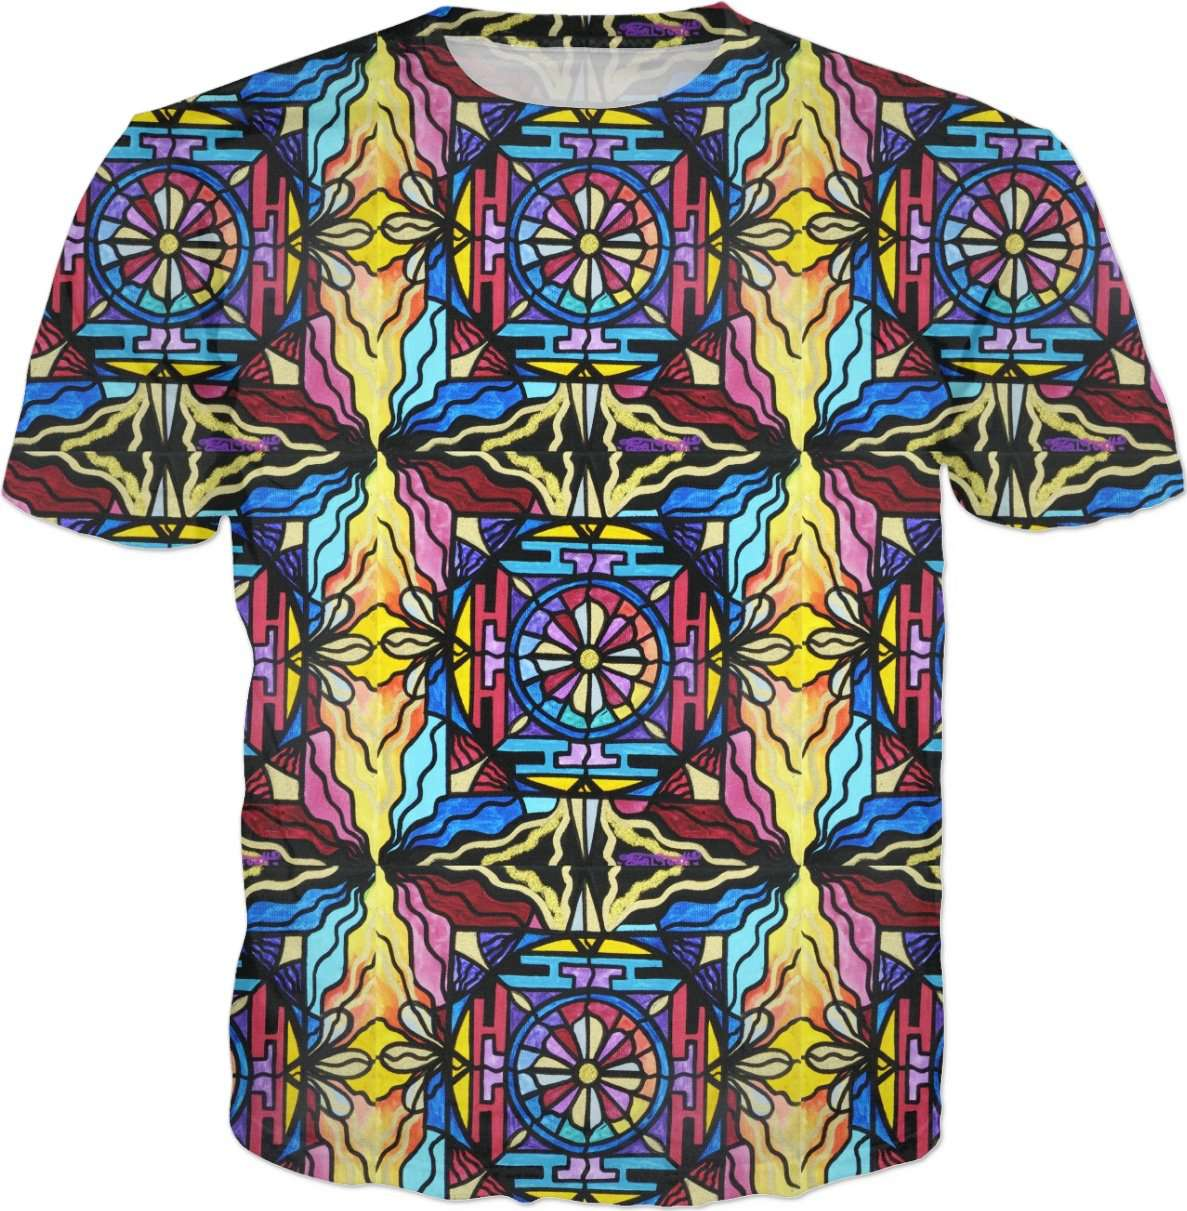 Tiled Opulence - Men's T-Shirt